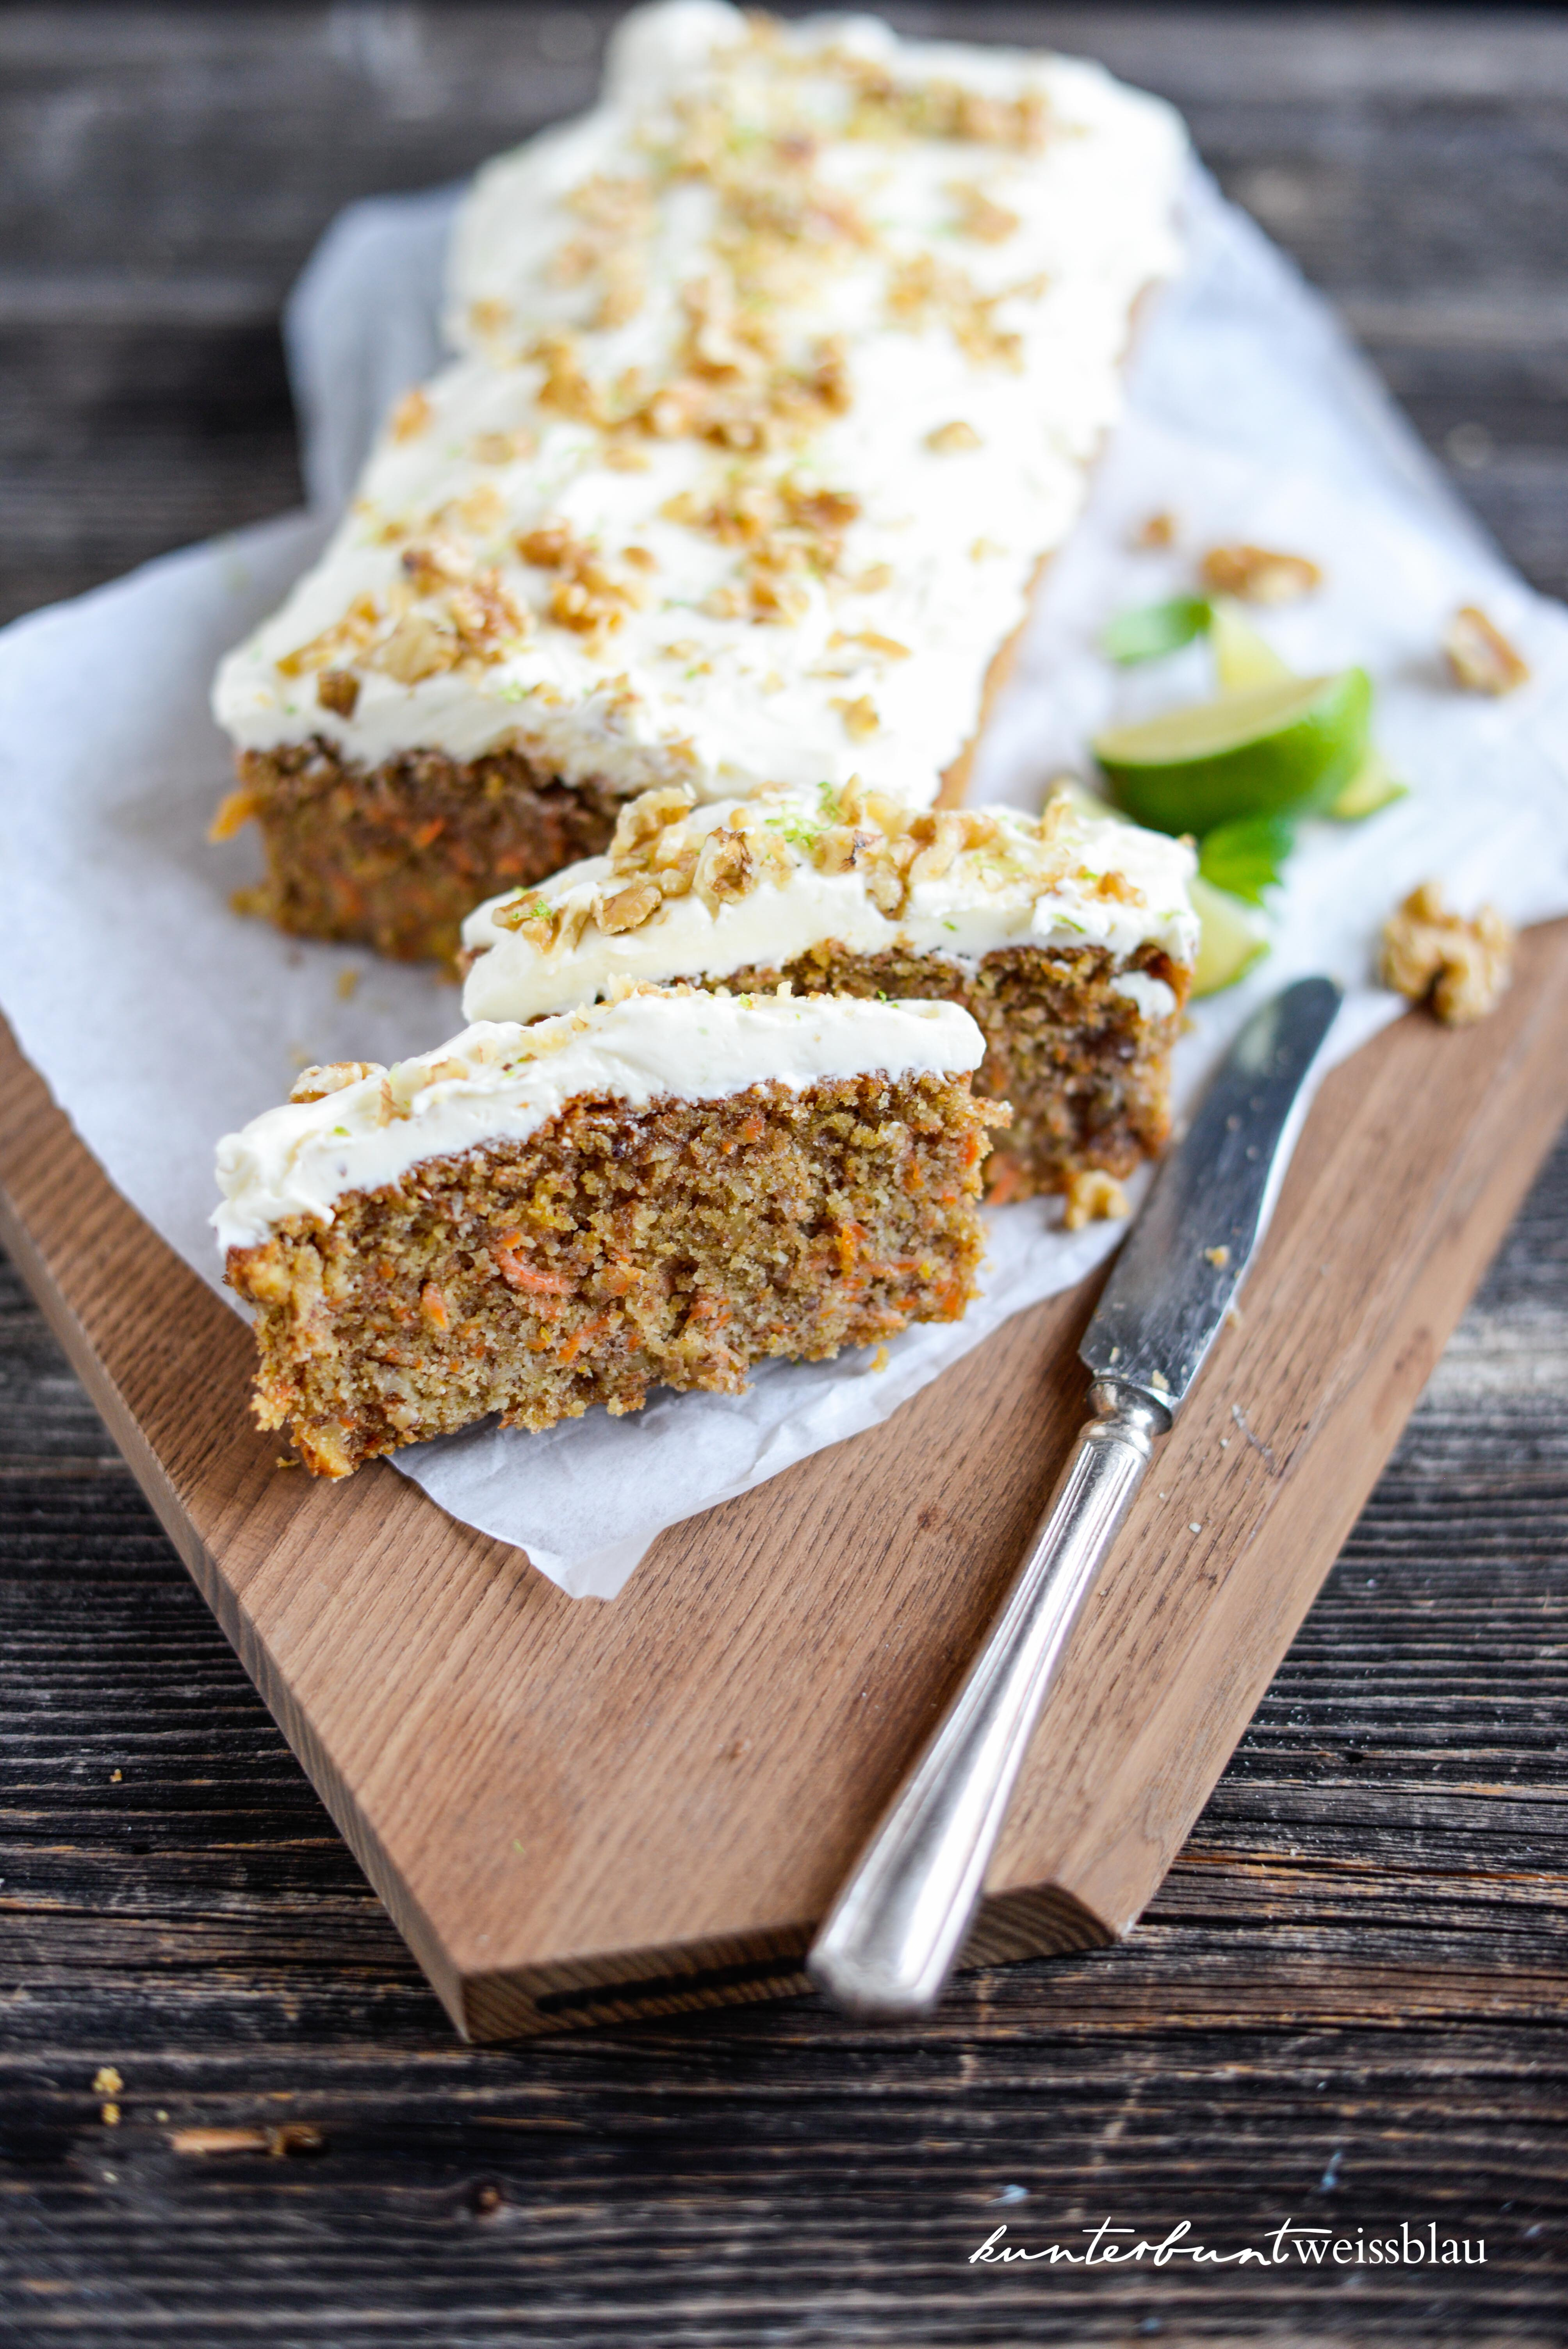 Jamie Oliver Carrot Cake Topping